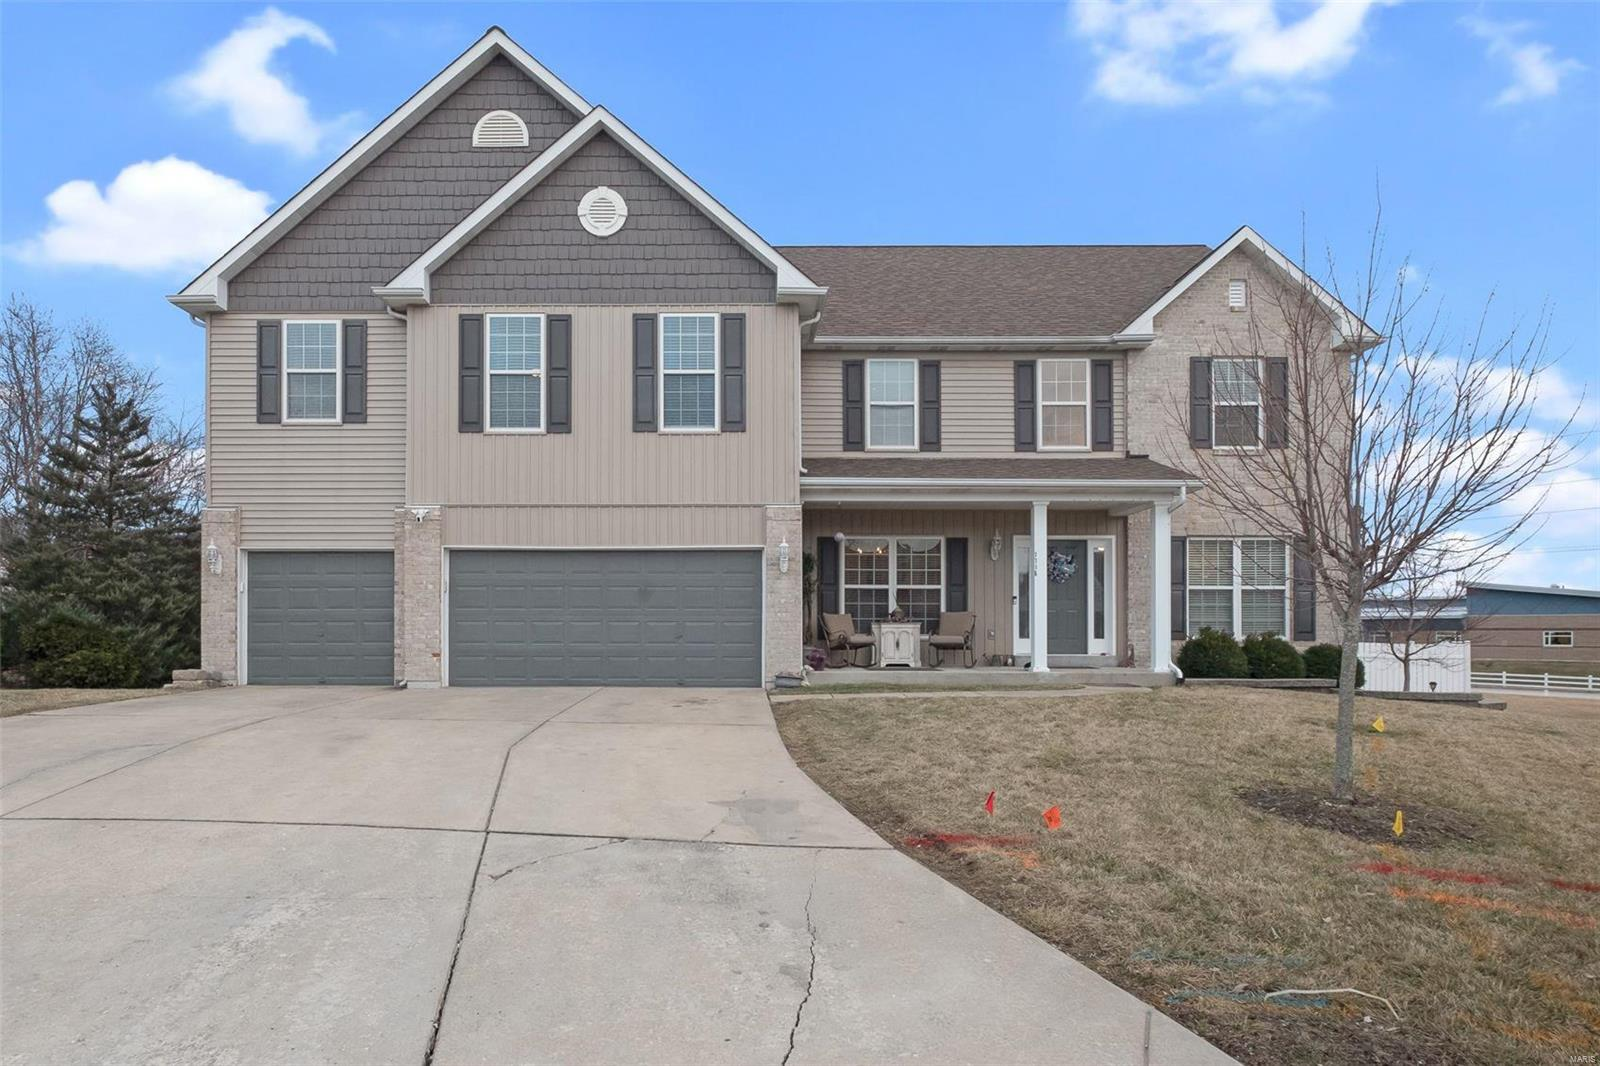 7716 Callie Property Photo - Dardenne Prairie, MO real estate listing